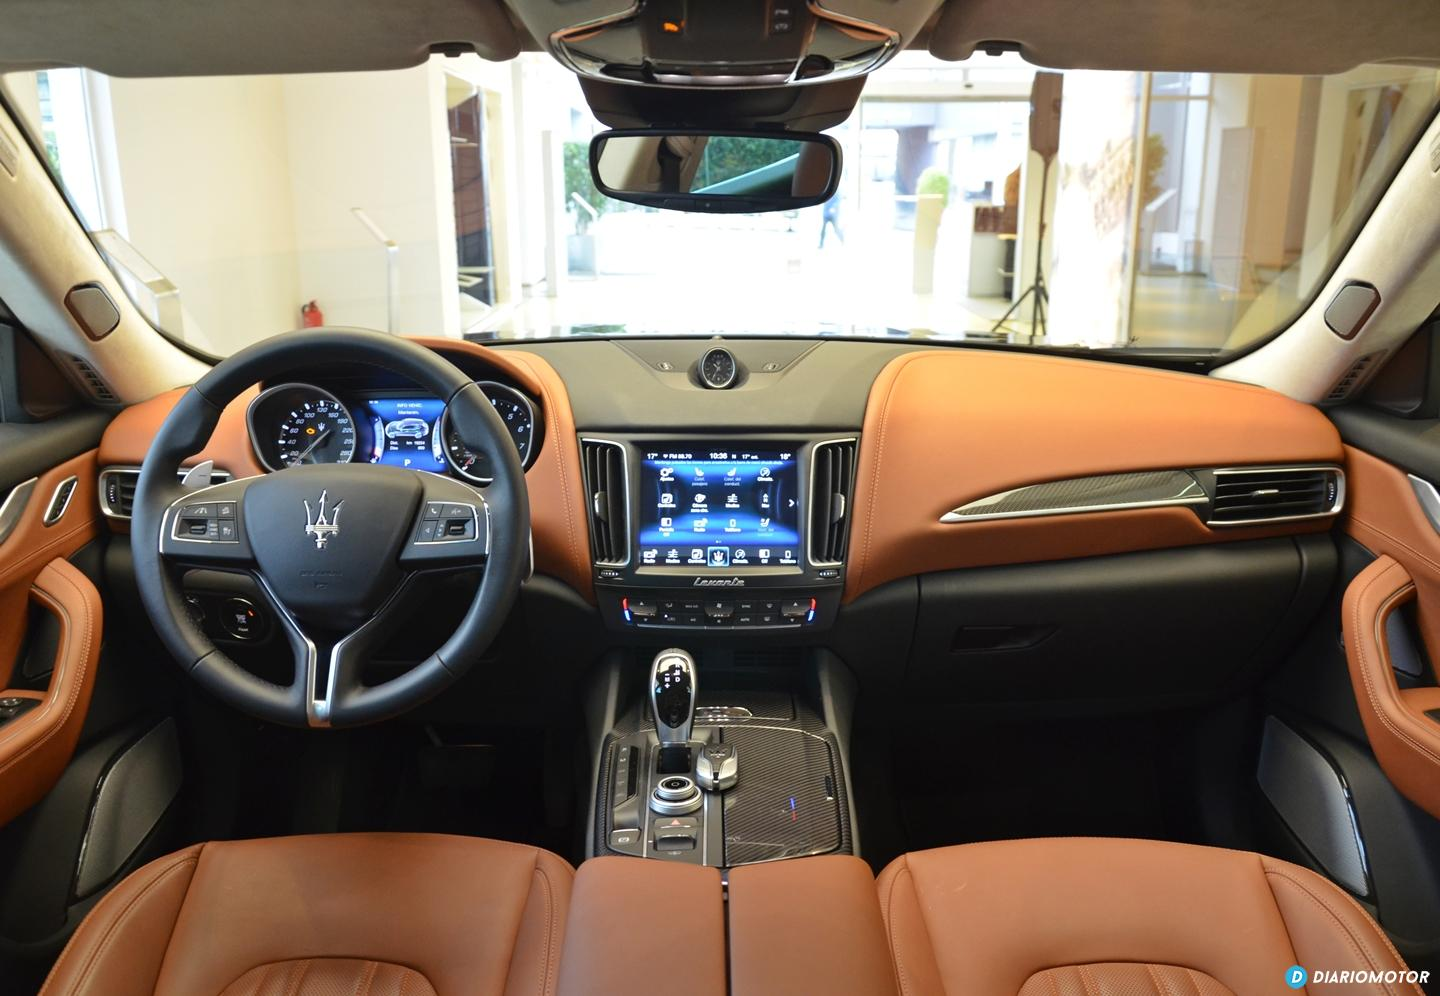 superb-design-of-the-brown-leather-seats-ideas-with-brown-dash-and-black-dash-ideas-of-the-maserati-levante-2016-interior